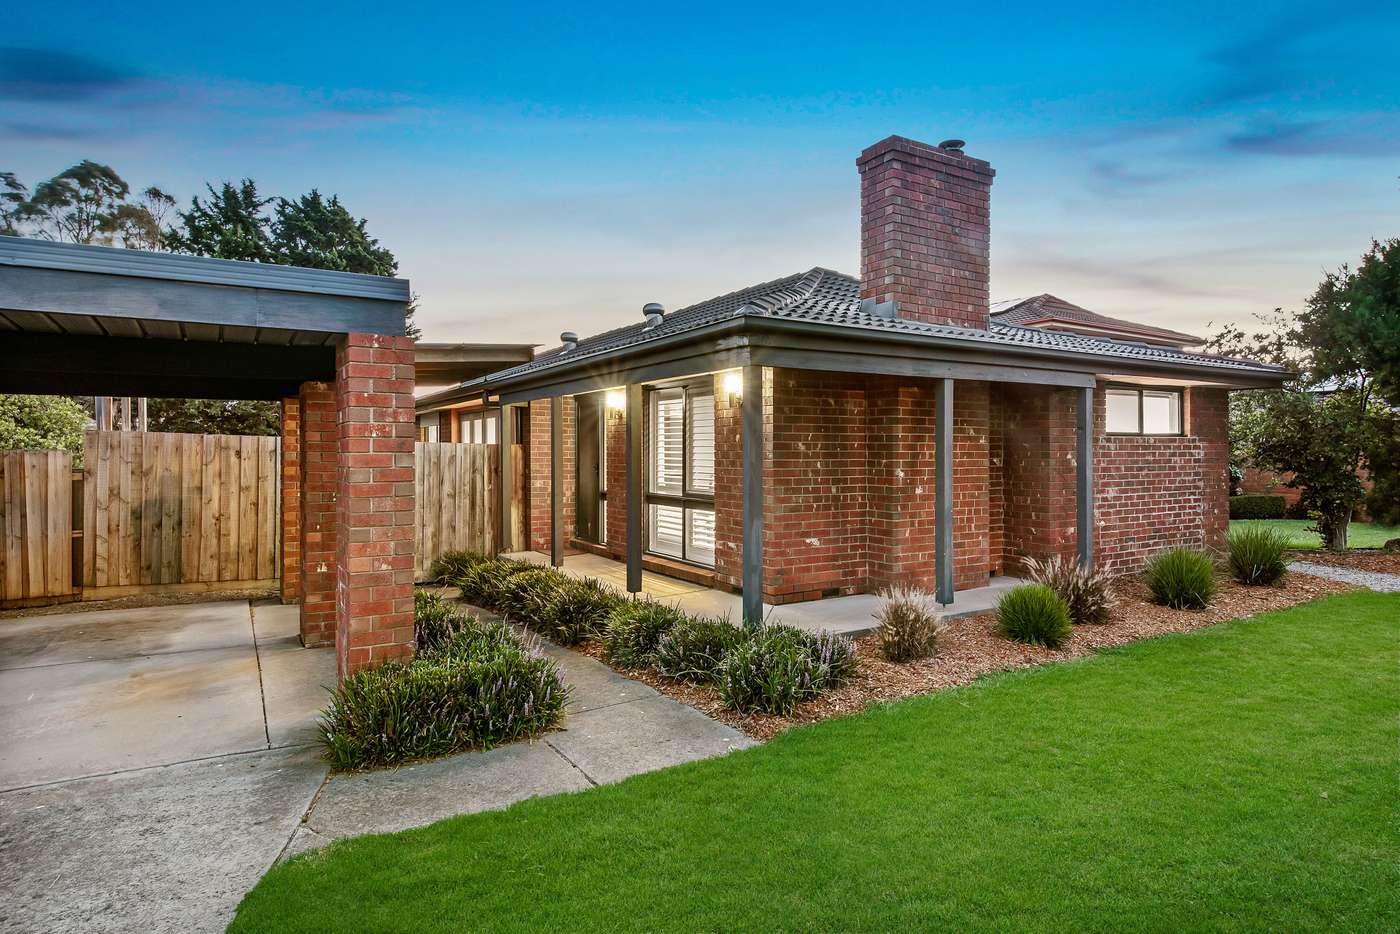 Main view of Homely house listing, 103 Mansfield Street, Berwick VIC 3806